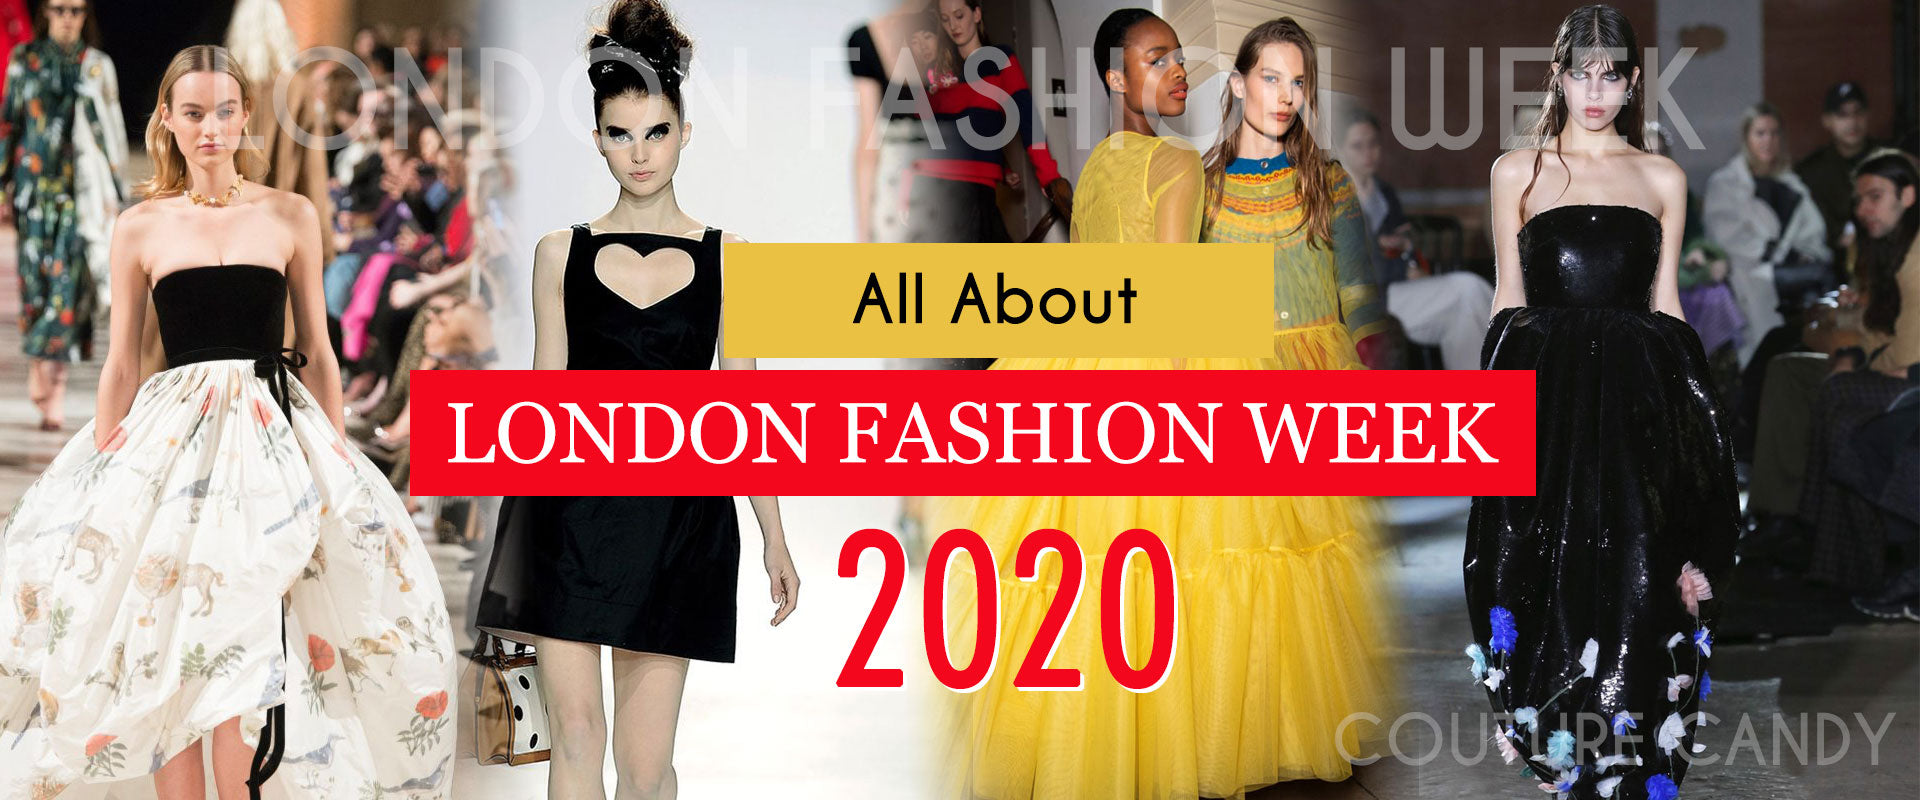 London Fashion Week 2020 - Dates, Schedule, Designers, and Tickets!